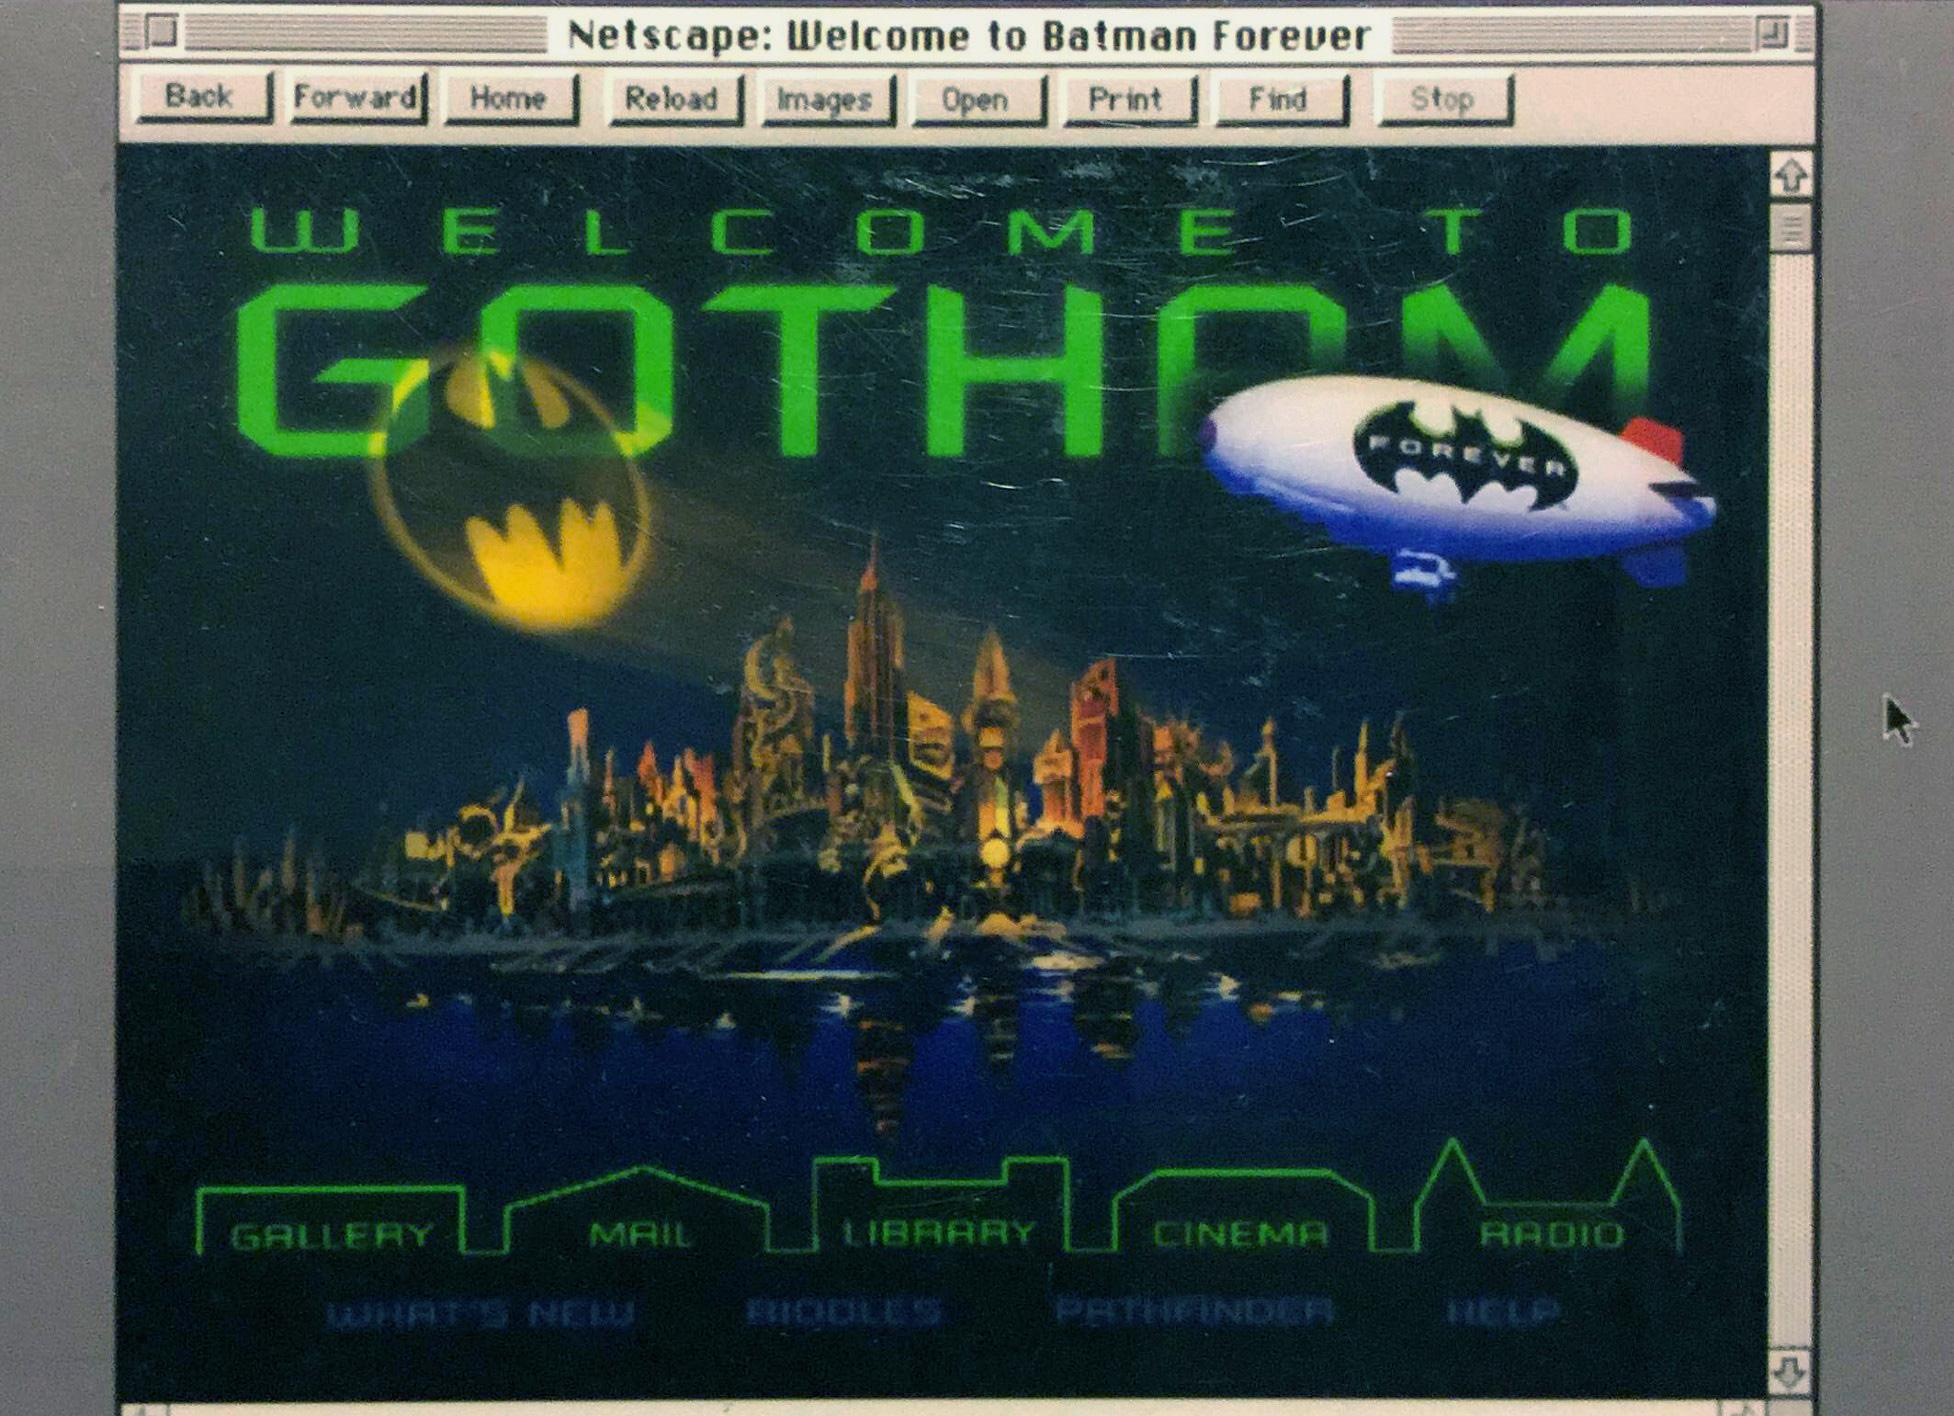 The first web animation was a GIF animation on a website for Batman Forever in 1995.